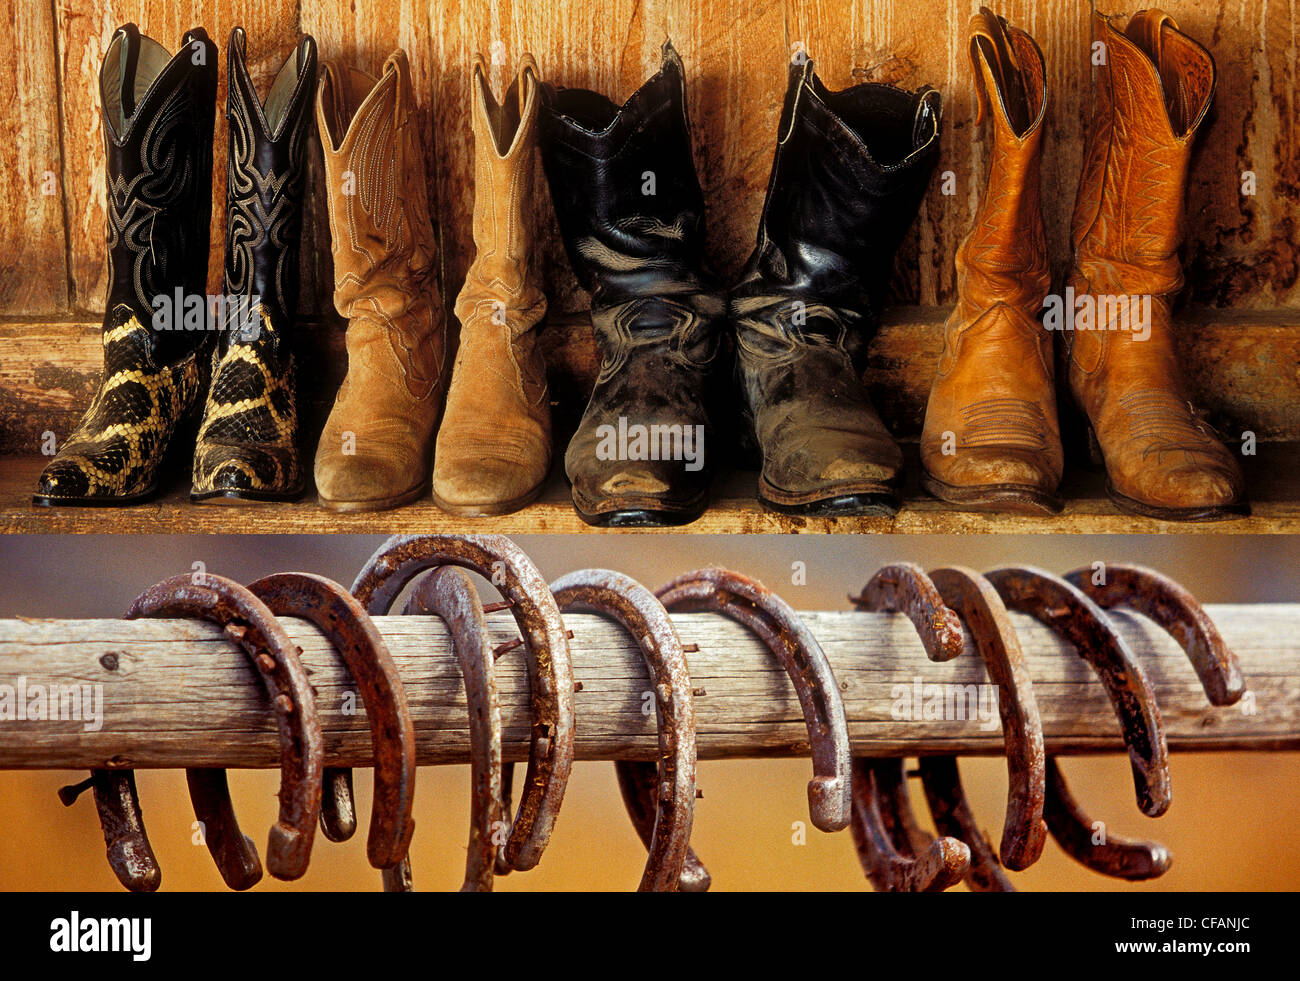 Western motif with cowboy boots and horseshoes on display, British Columbia, Canada - Stock Image